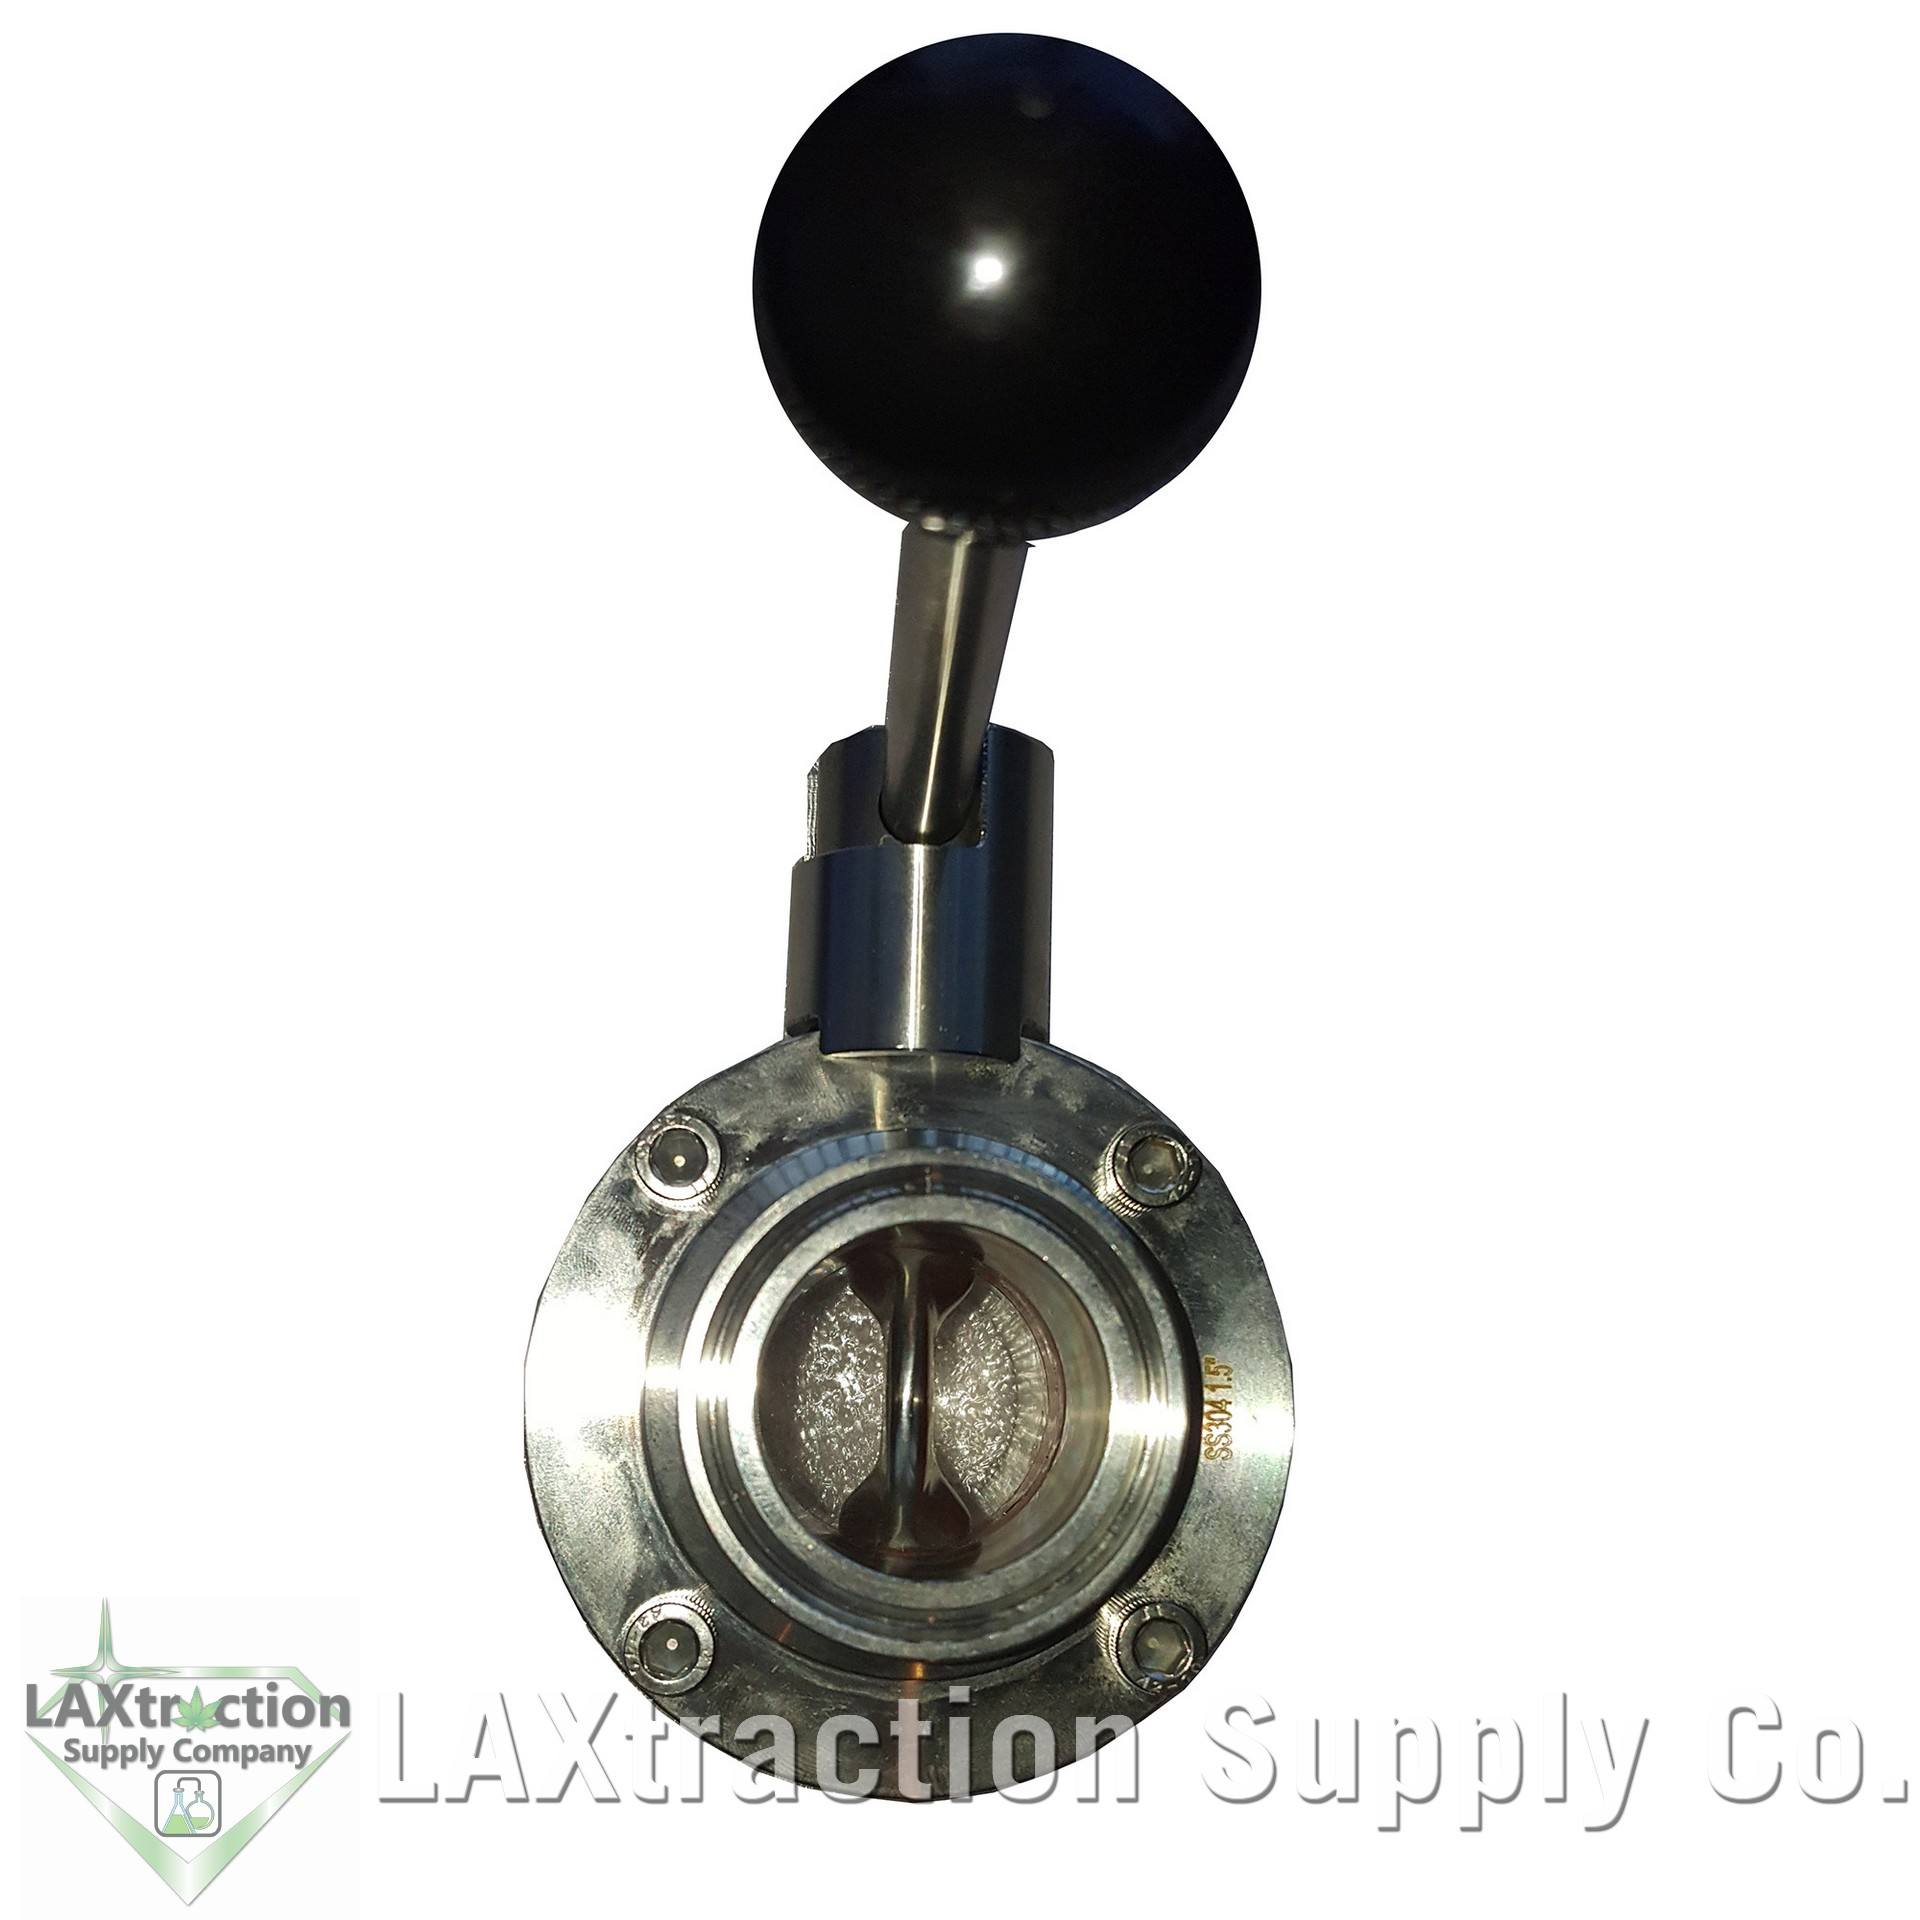 1-1/2 Sanitary Butterfly Valve - Tri Clamp Clover Stainless